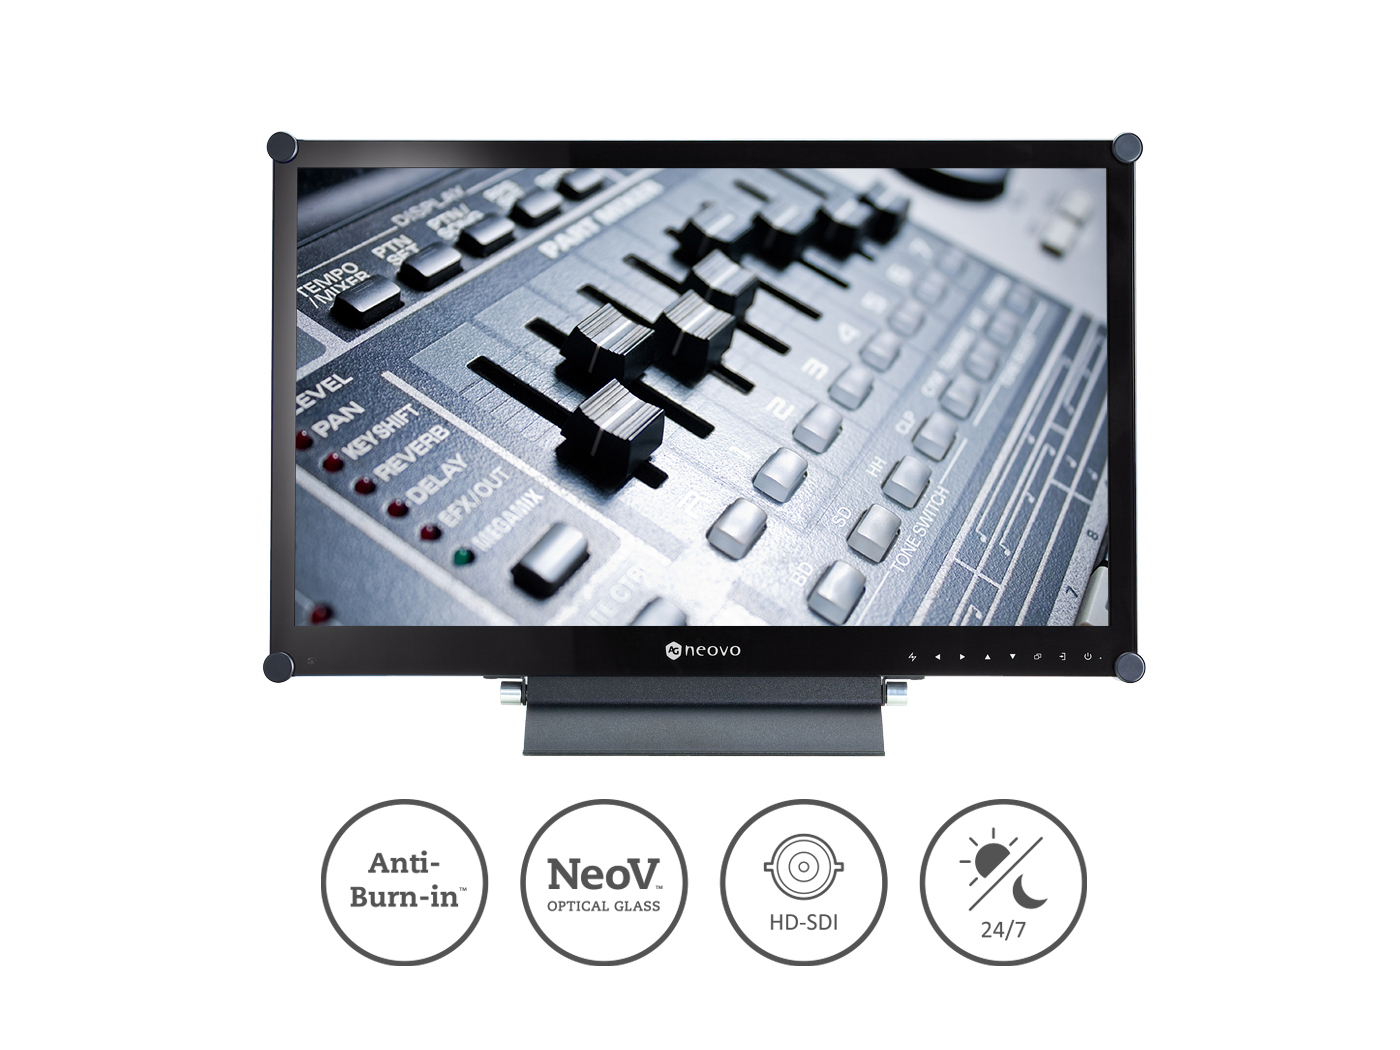 AG Neovo HX-24E 24in LED-backlit Full HD Real-time Video Display with Zero Latency